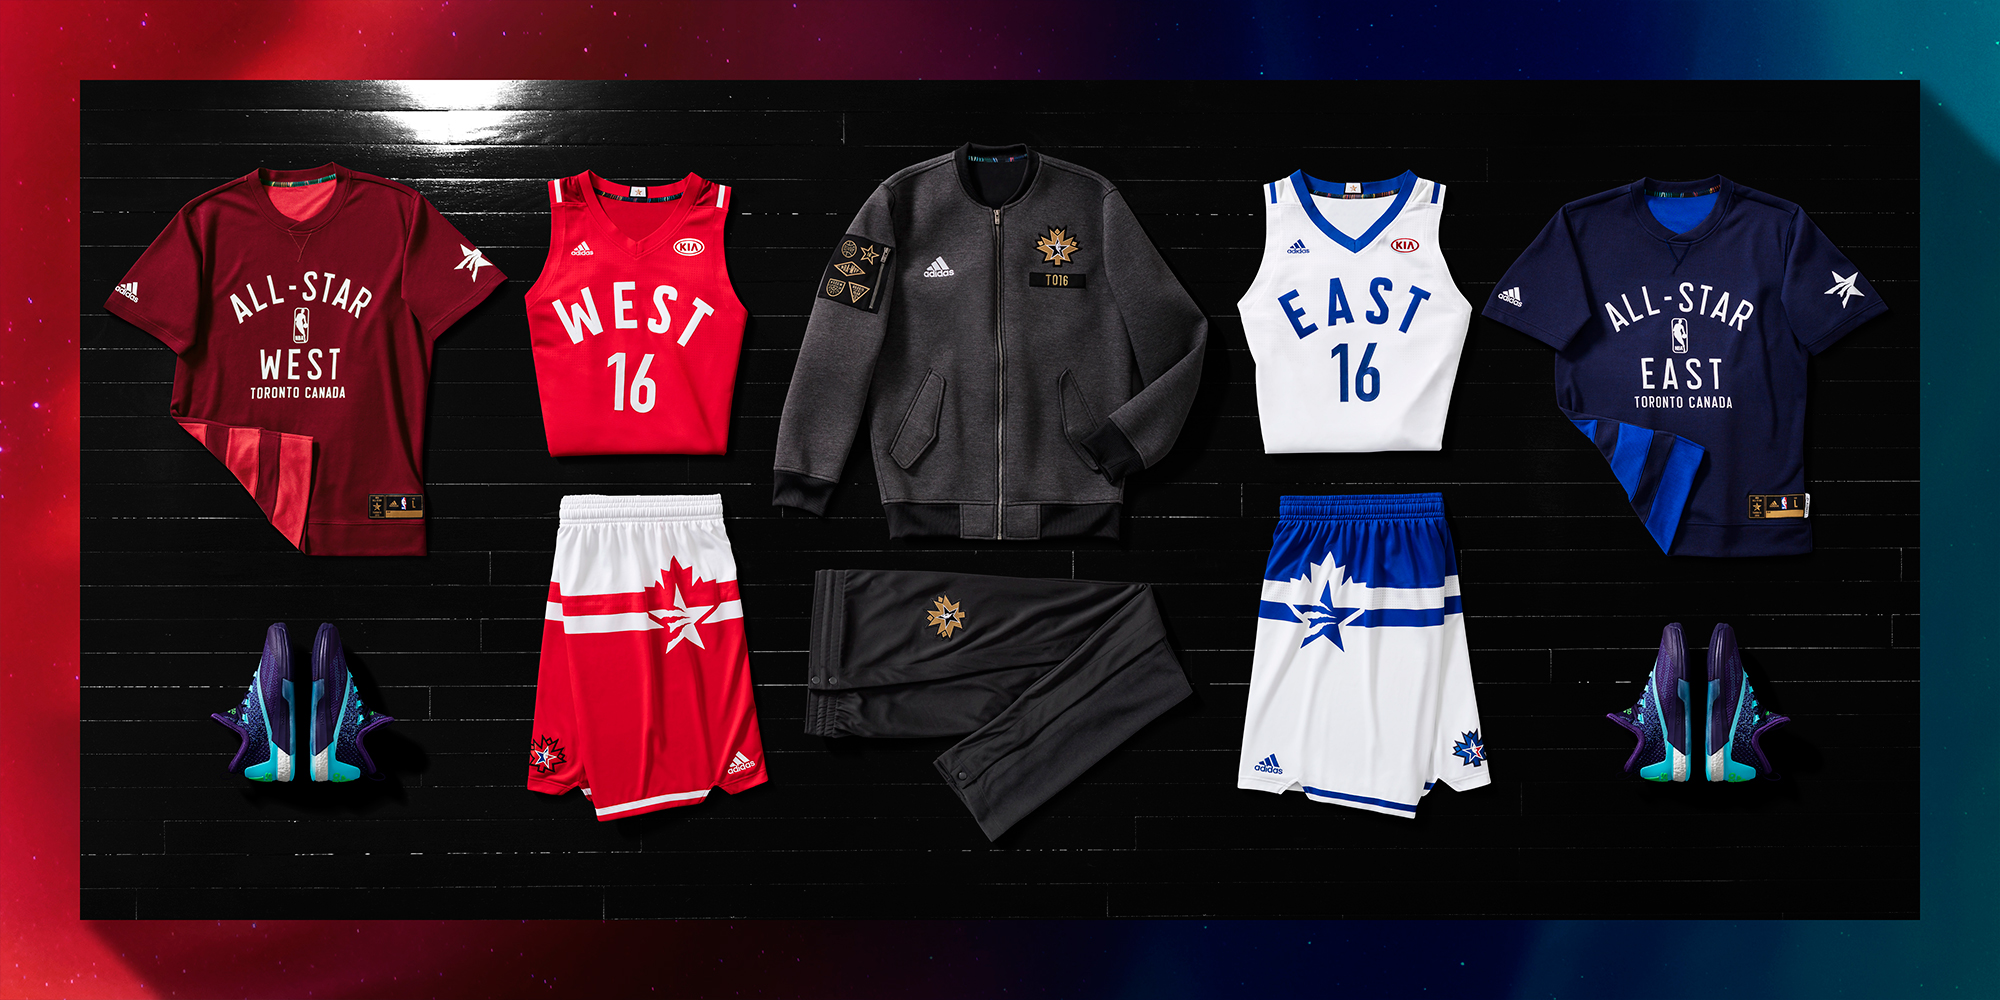 bdaf5e02e 2016 NBA All-Star Game Jerseys Unveiled